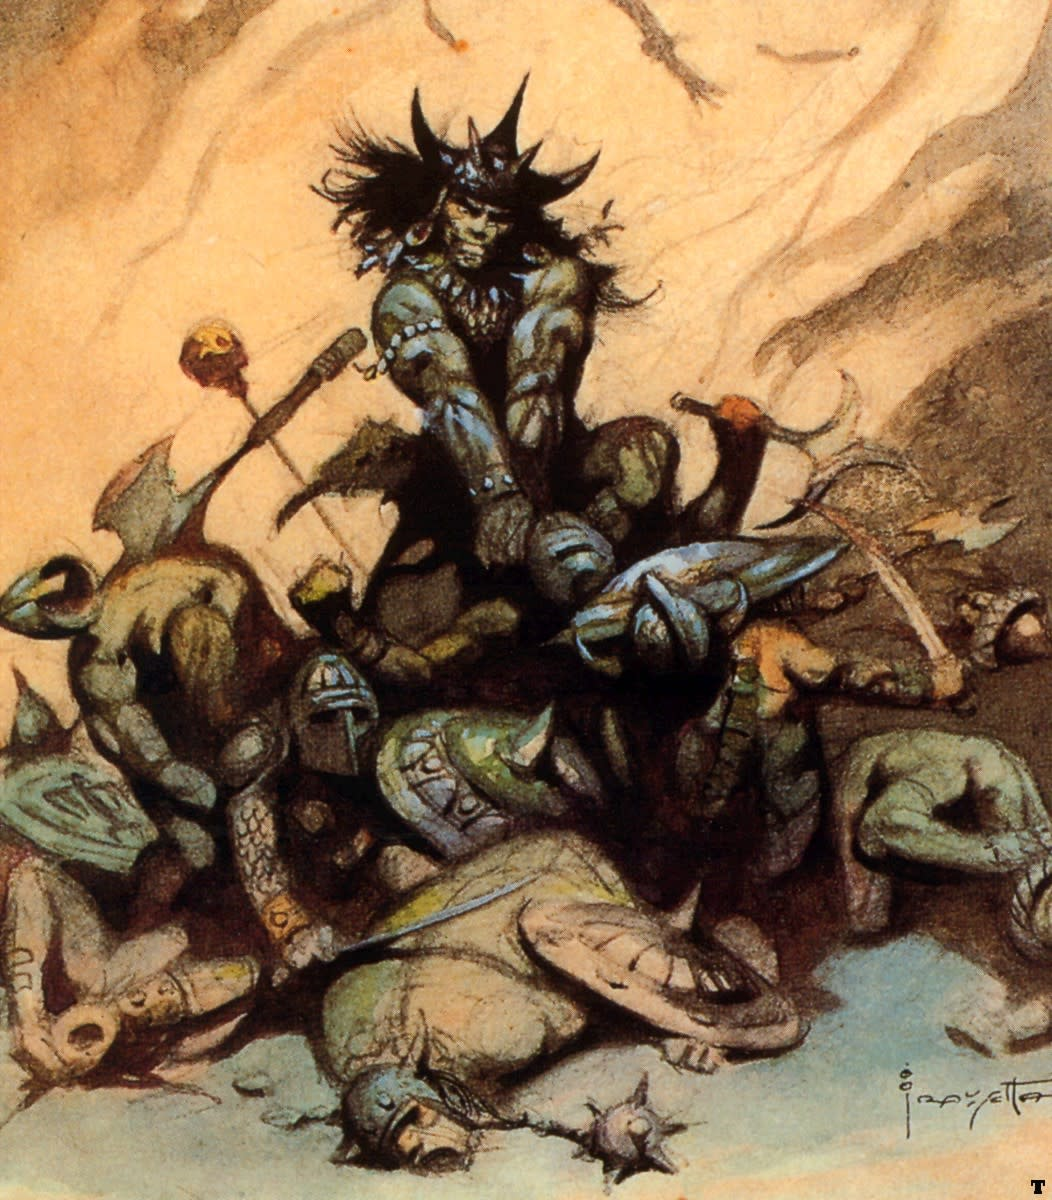 Conan sketch from Frank Frazetta